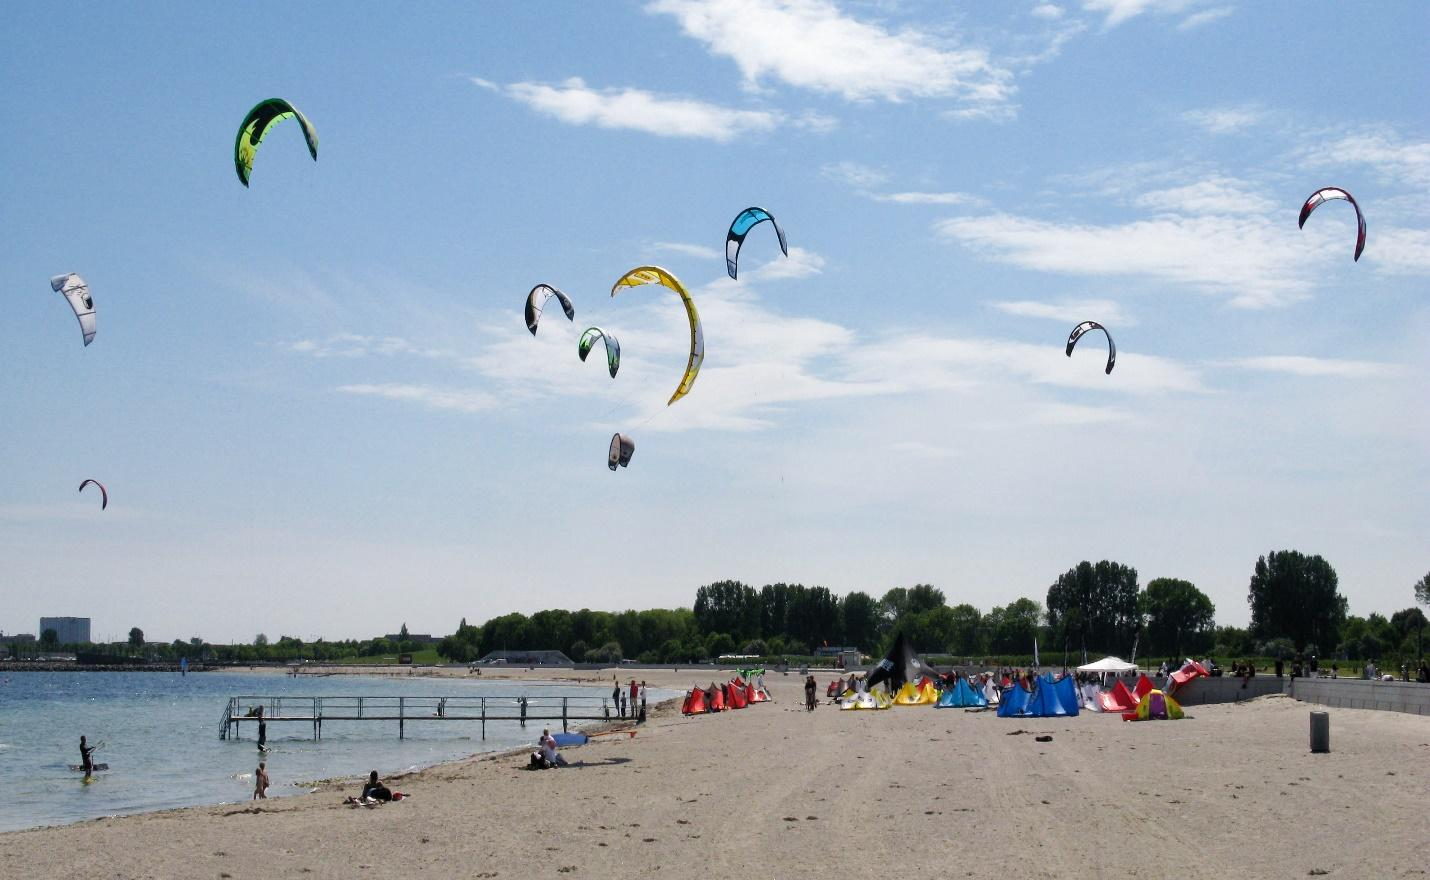 C:\Users\Arslan\Desktop\english-kite-surfers-amager-beach-park-copenhagen-denmark.jpg